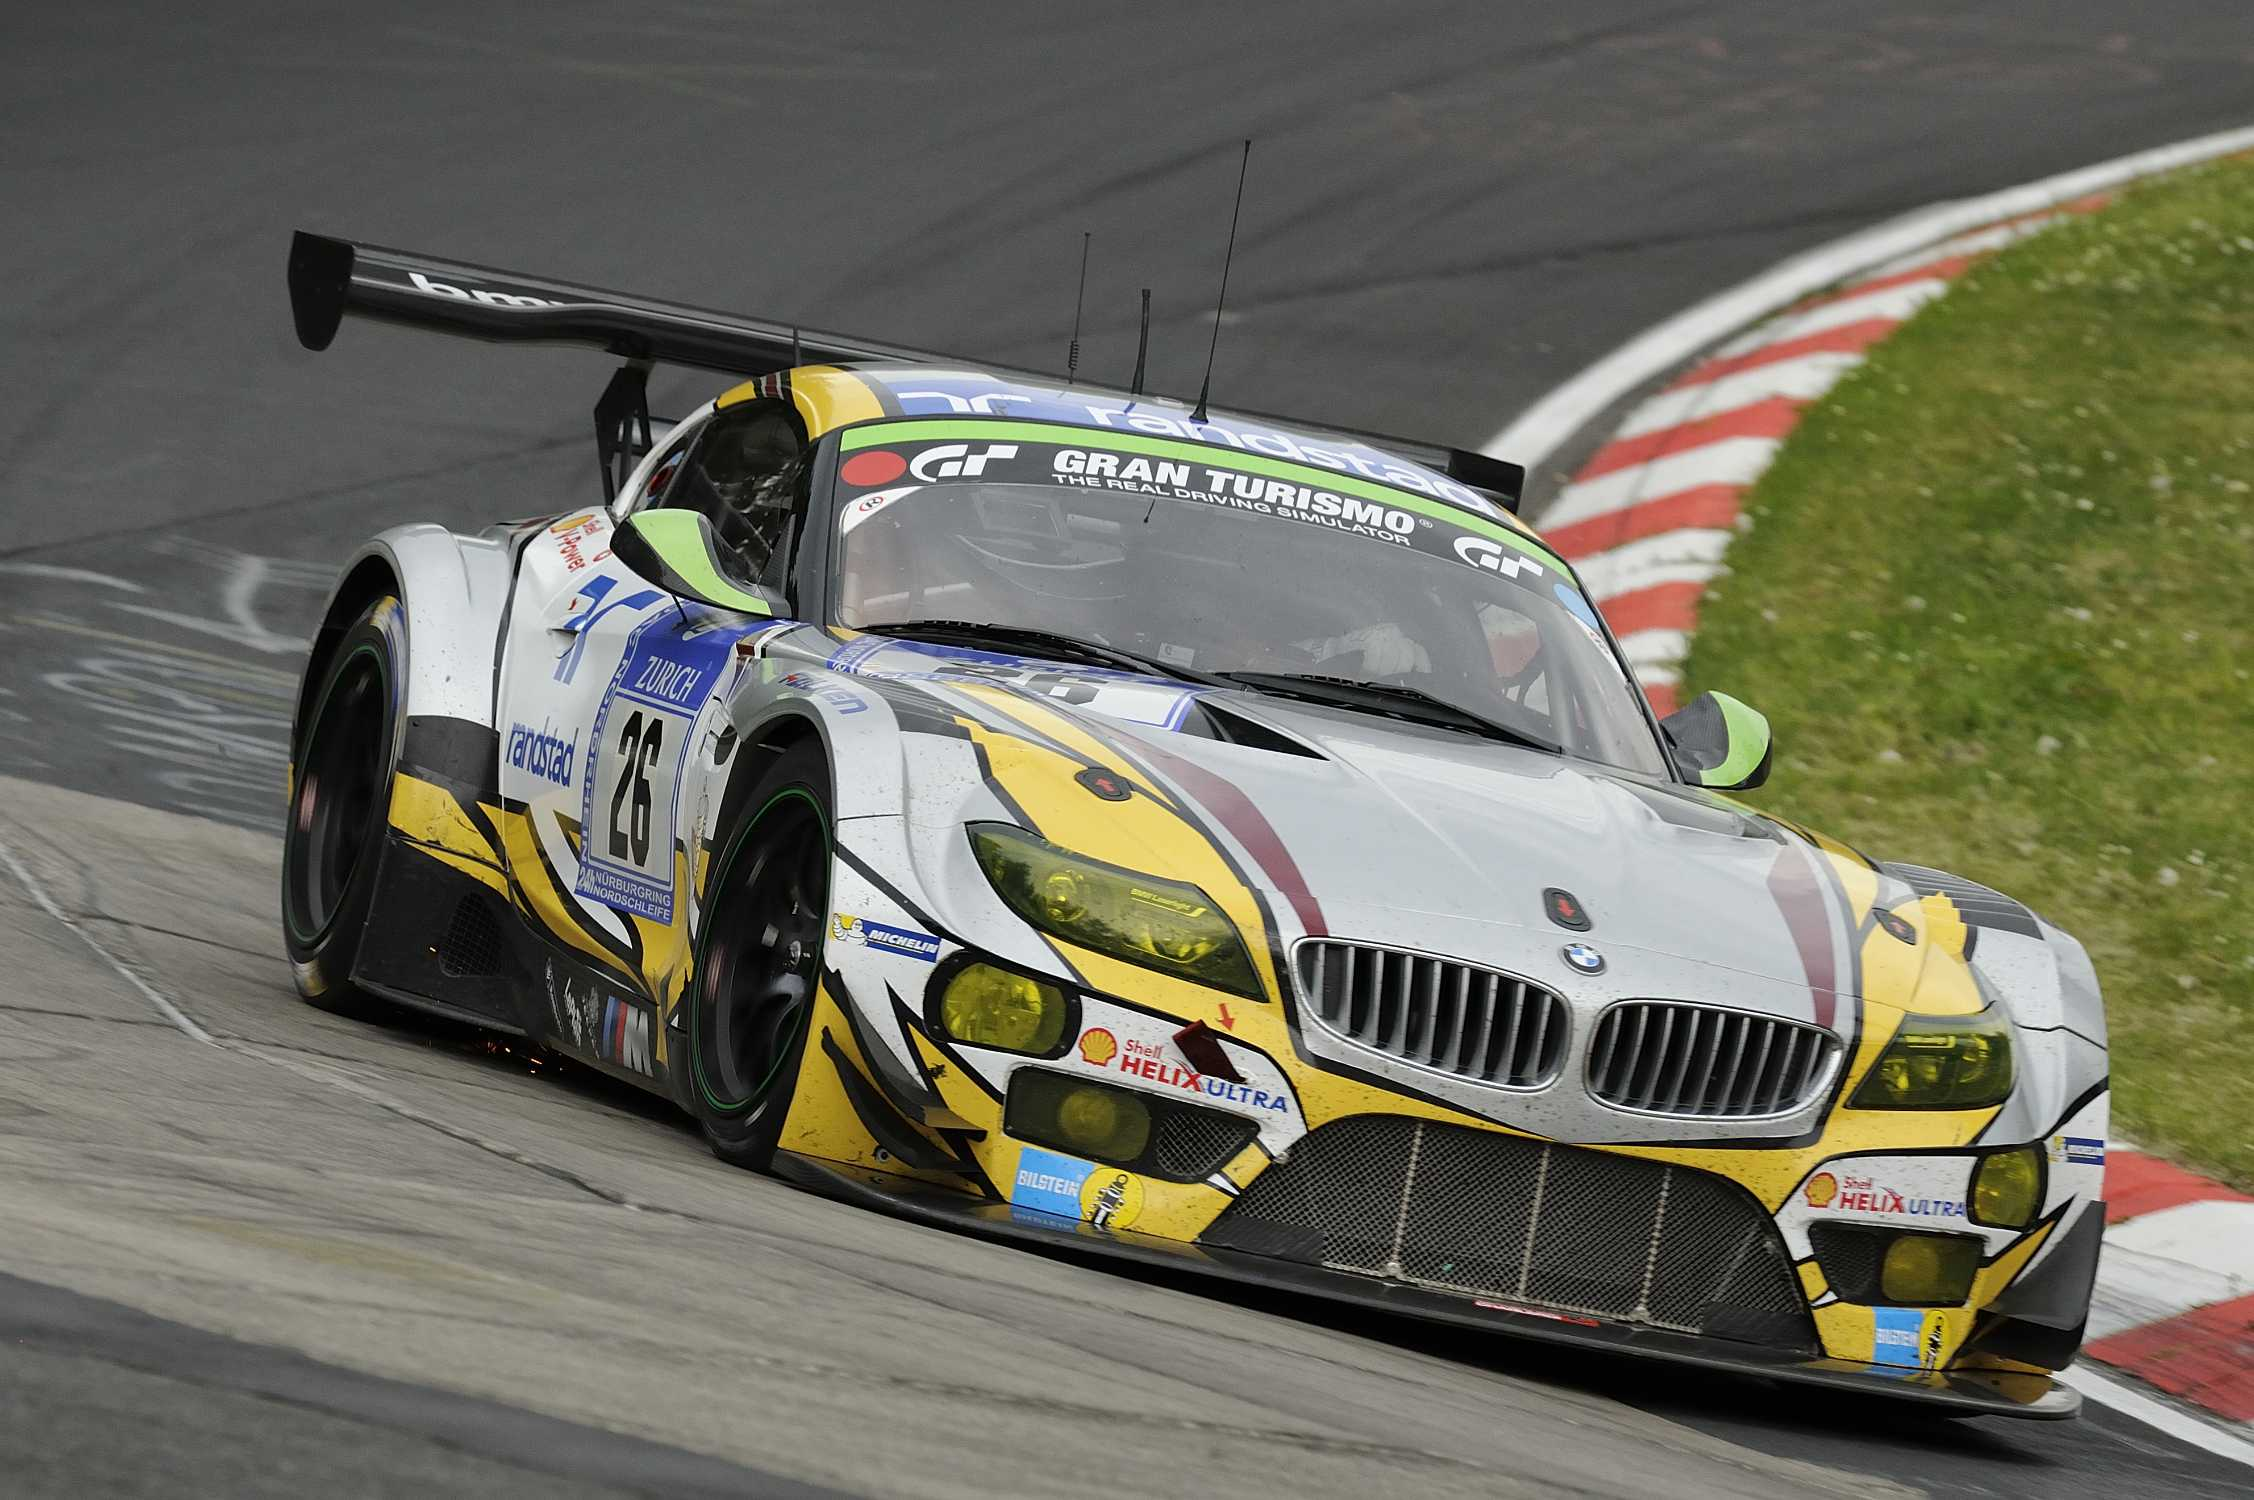 hintergrundbild bmw racing sport - photo #32